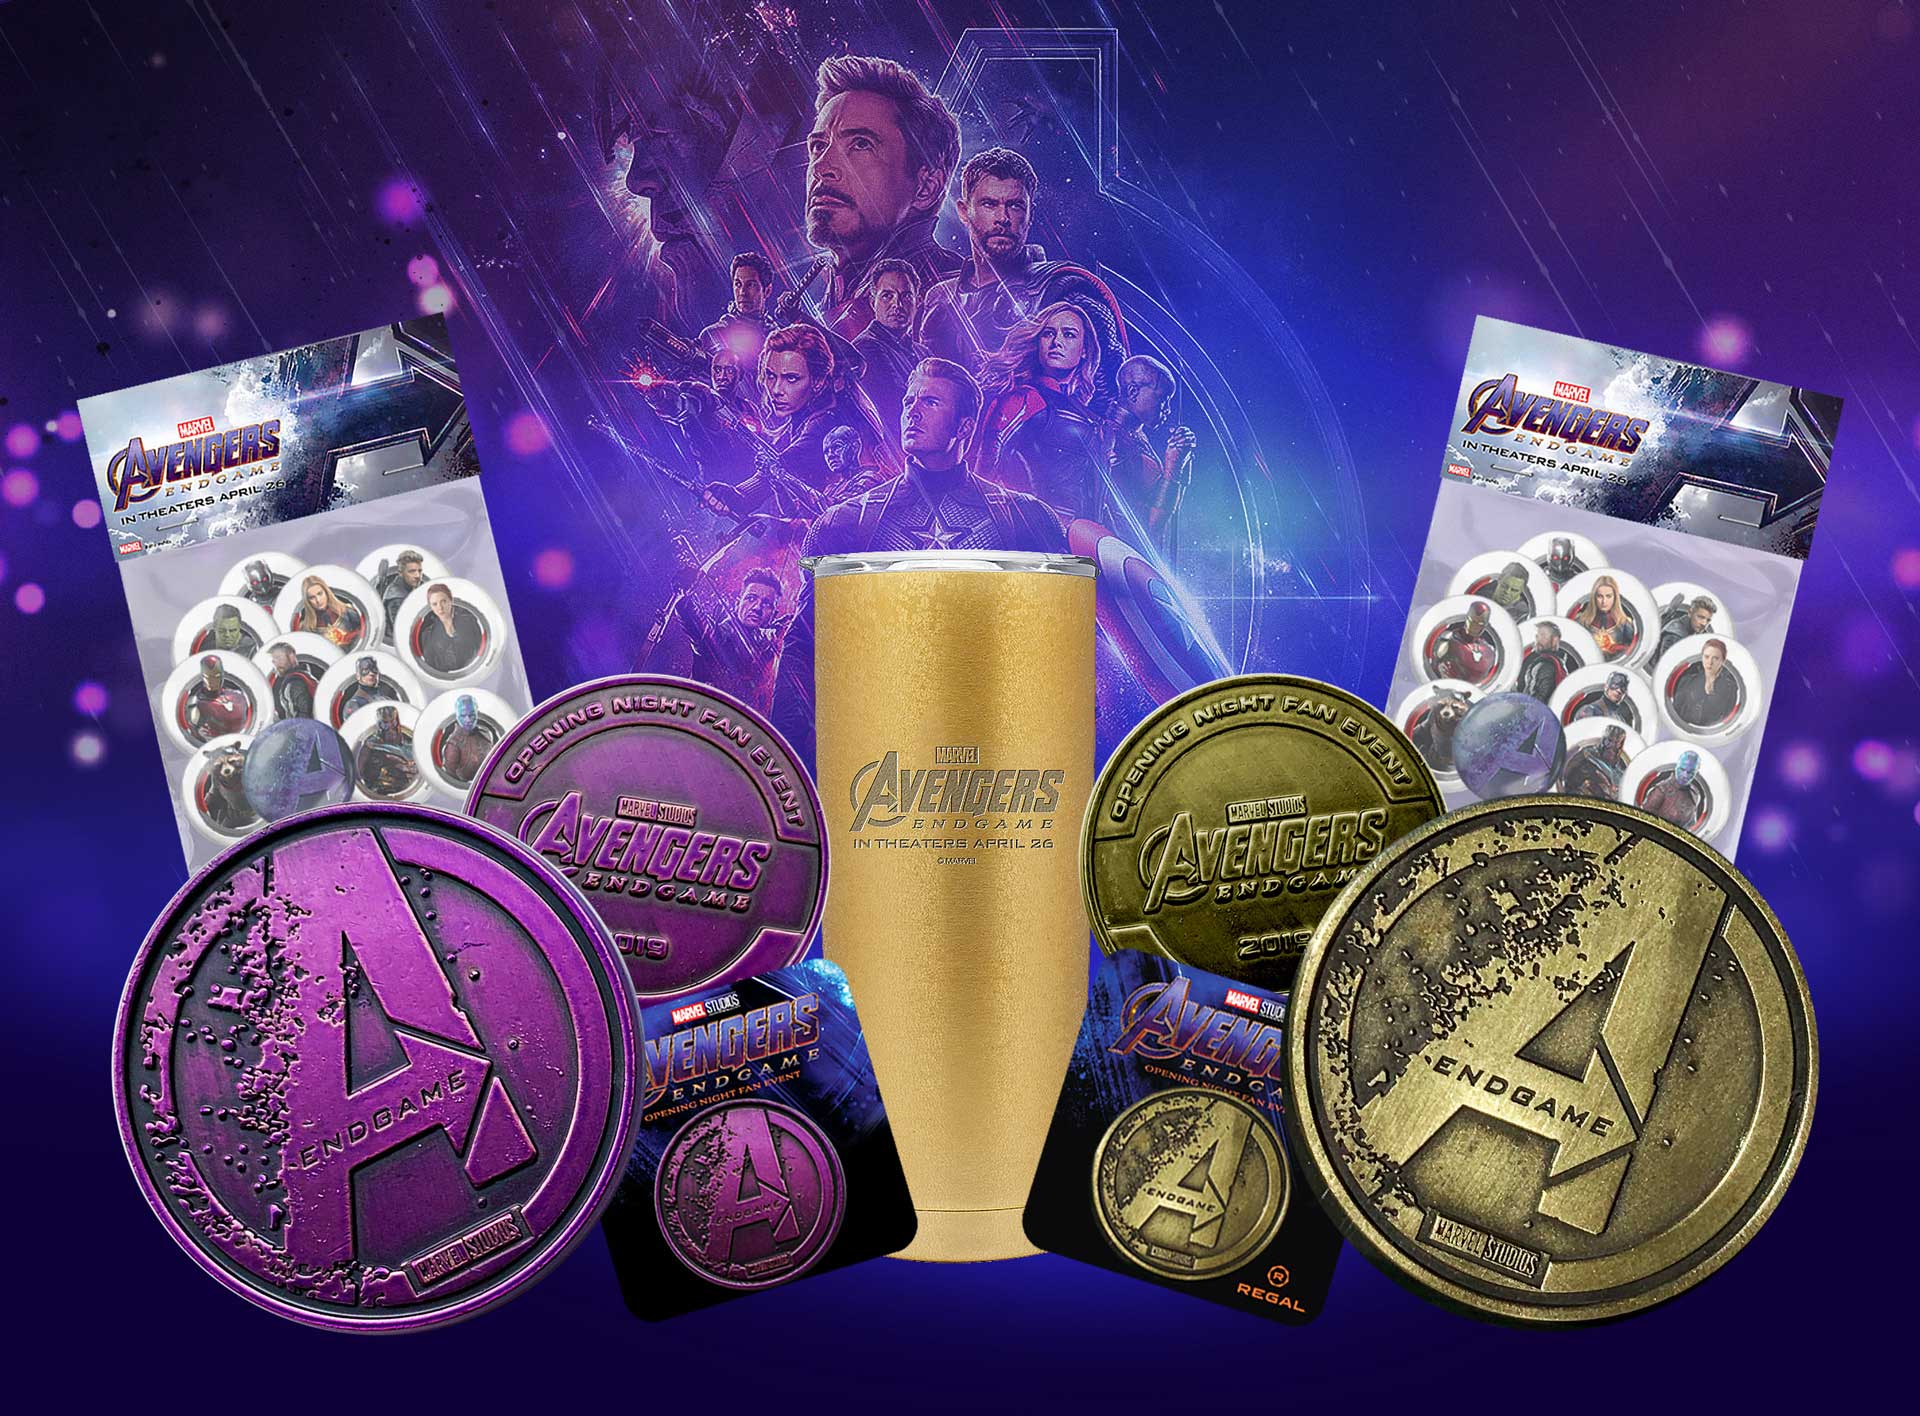 New World Group Marvel Avengers endgame premium coins, stickers and movie promo items